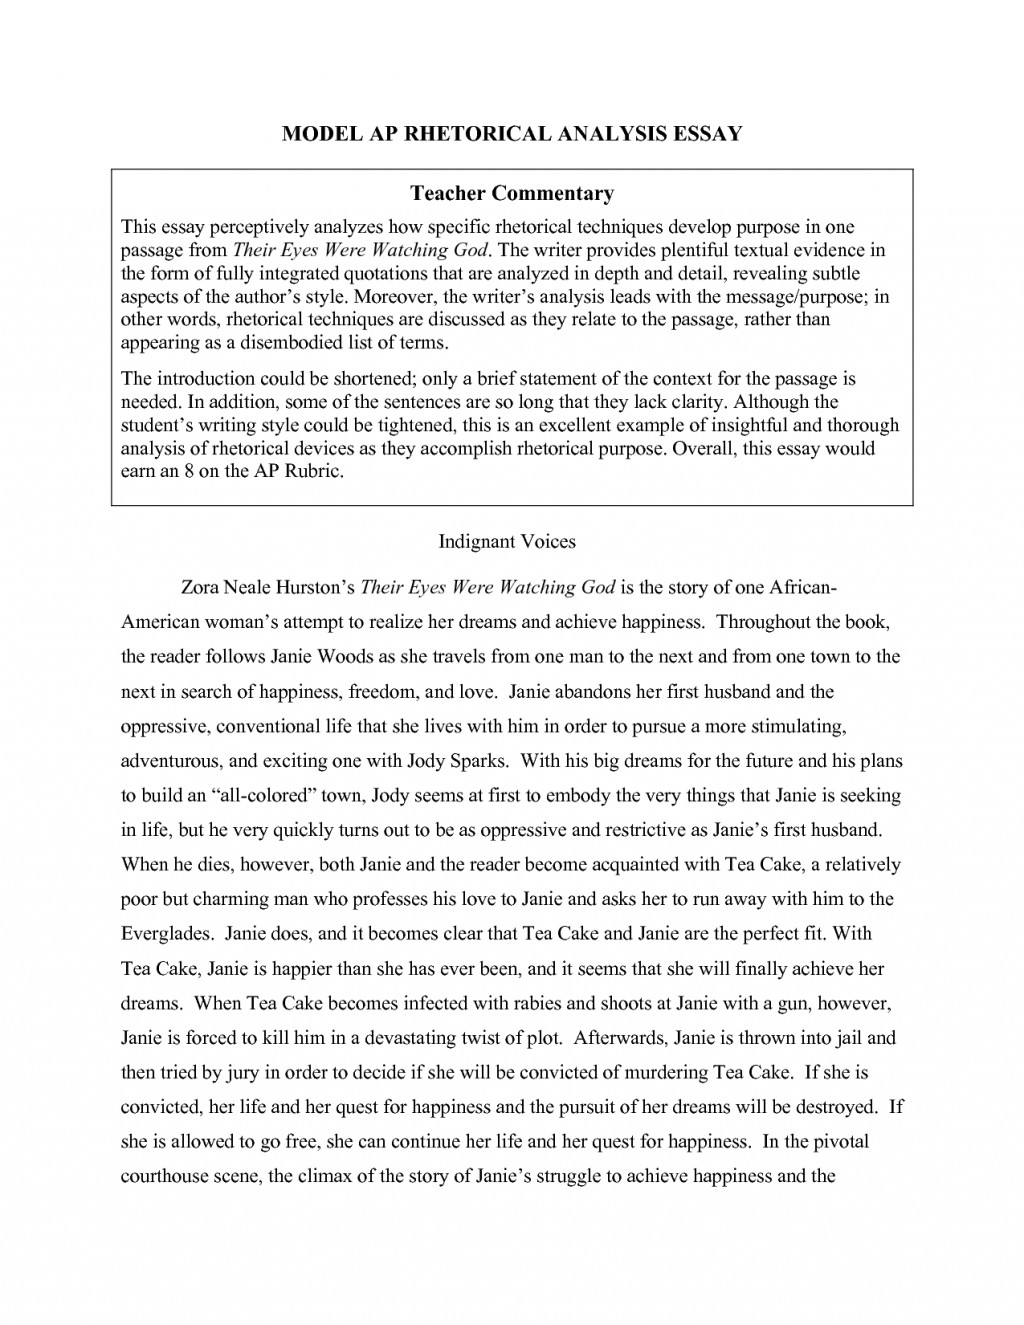 008 Rhetorical Essay Example Analysis Introduction Term Paper Writing Service Visual Examples Daaui Advertisement Argument Text Image Impressive Ap Lang 2016 Devices English Large